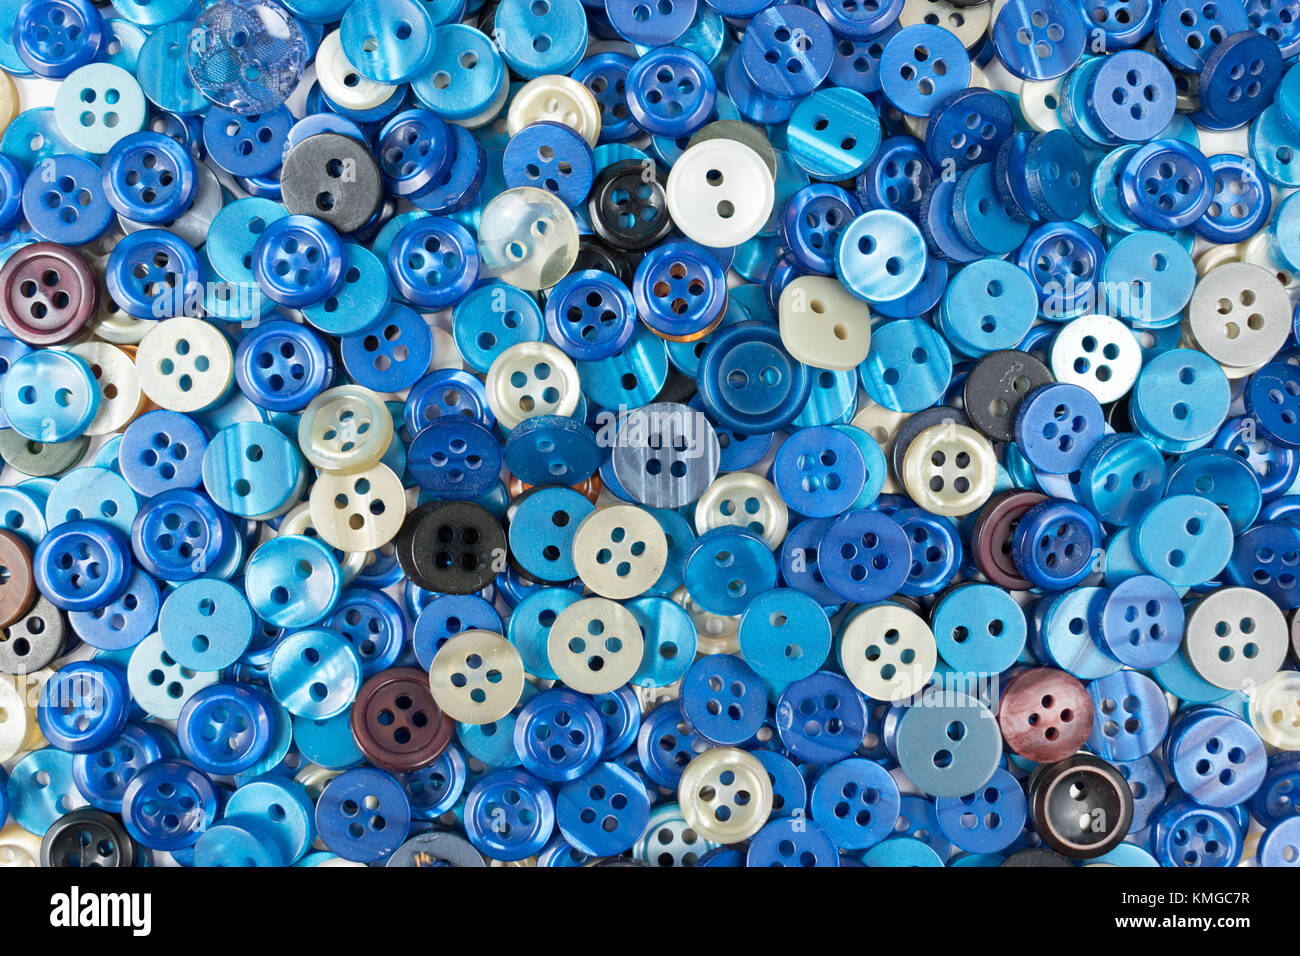 Set of blue sewing buttons on white background Stock Photo